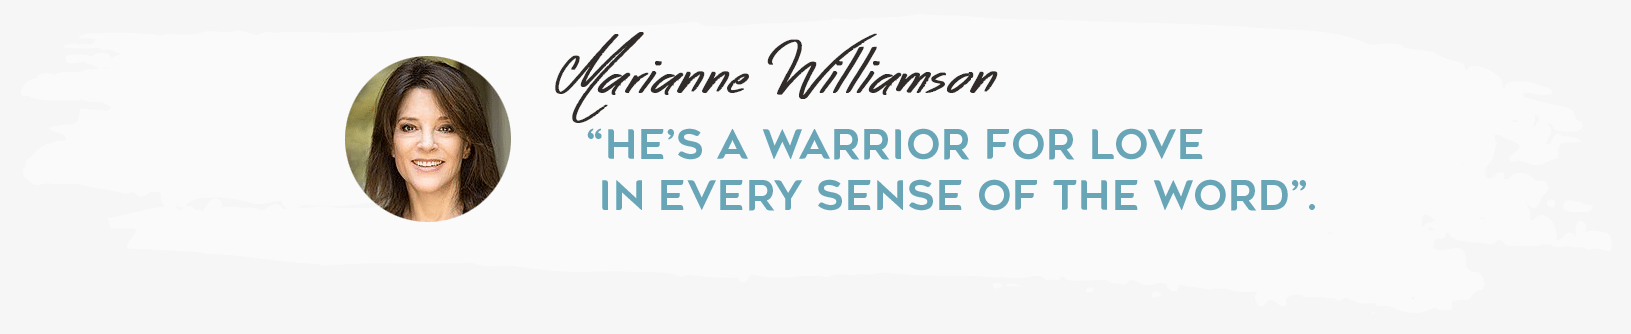 Marianne-Williamson-Quote-New-transparent2